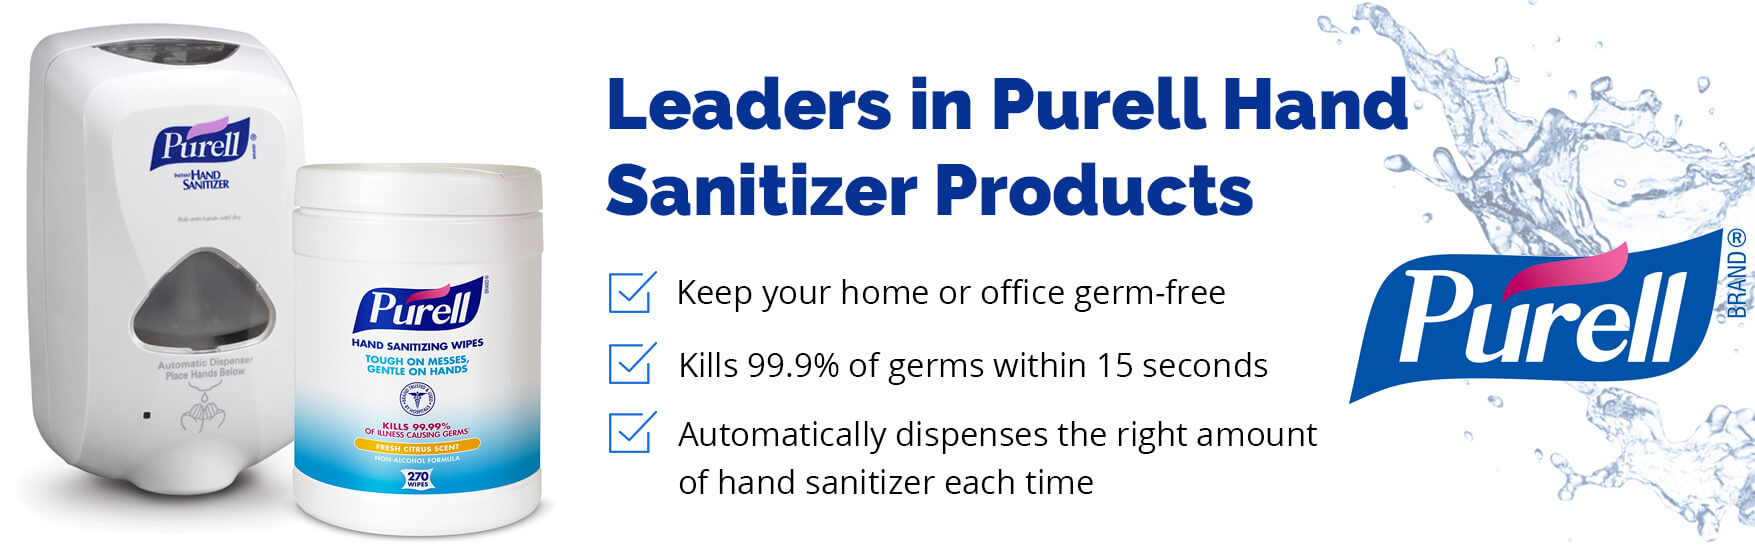 Leaders in purell hand santizer products